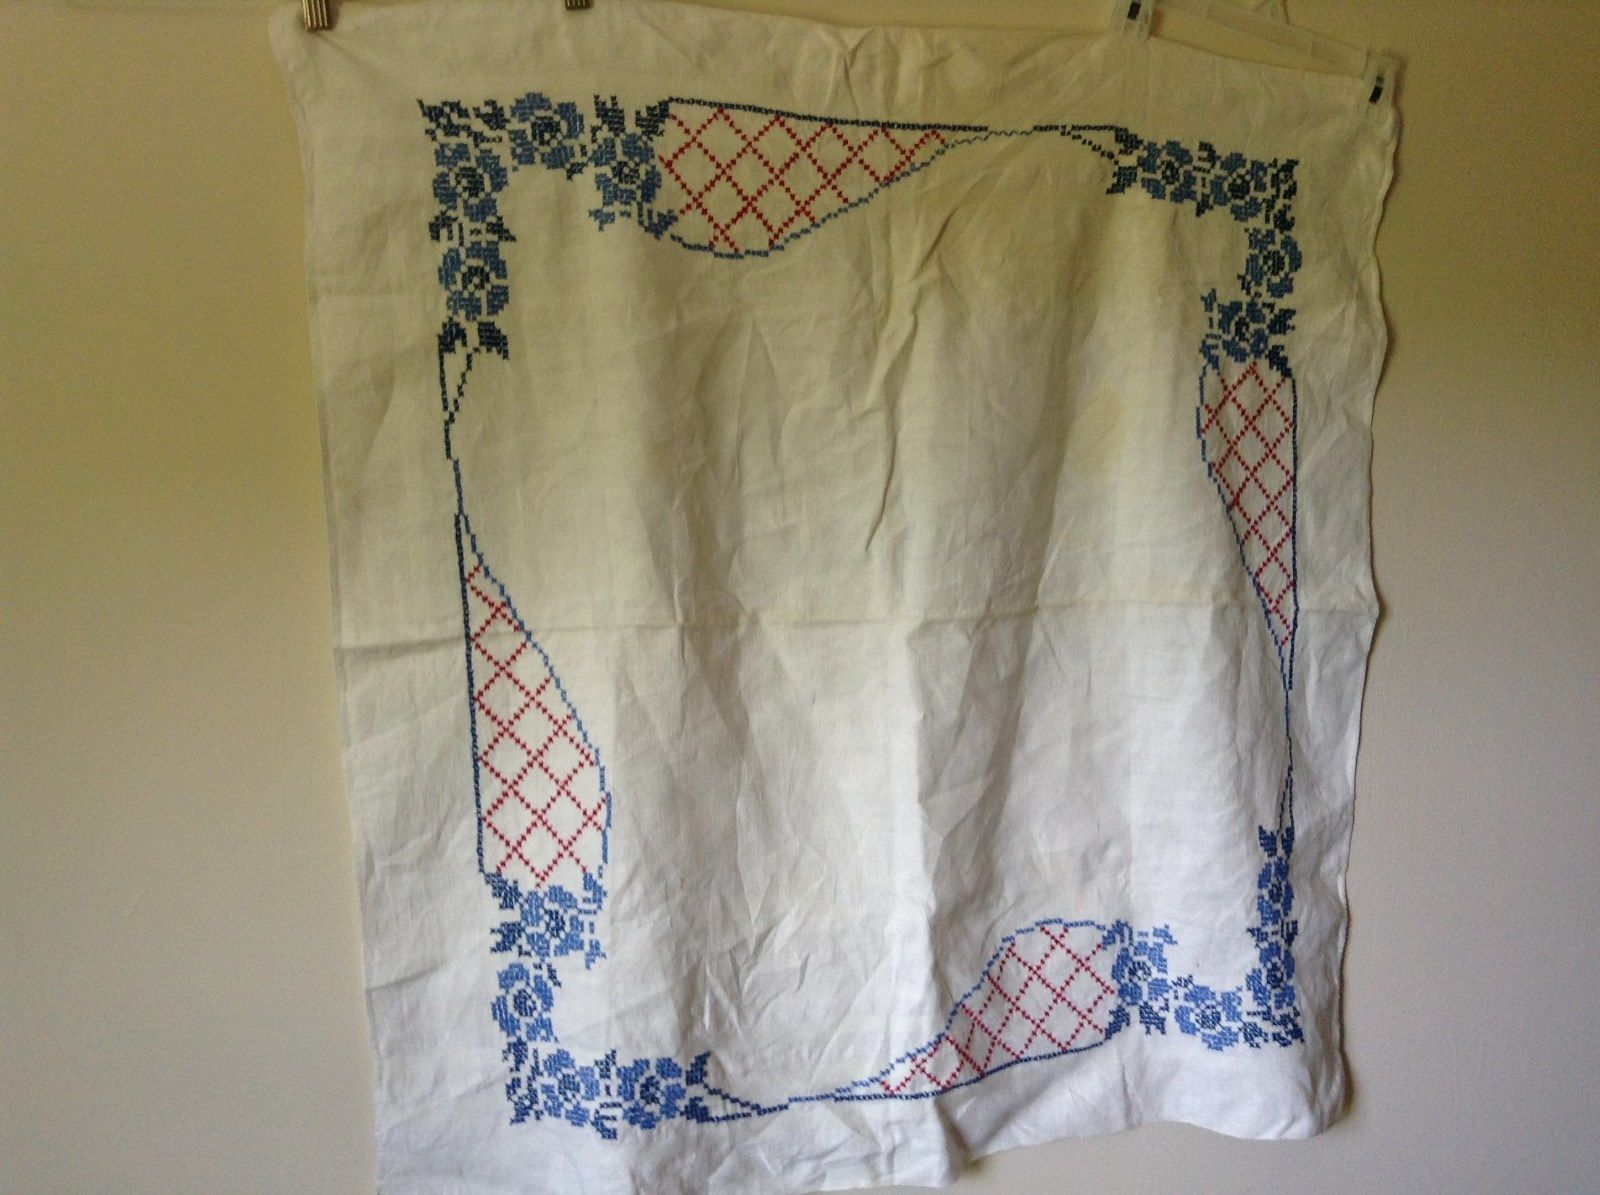 White Tablecloth Vintage Blue Red Hand Stitching Design 35 Inches by 35 Inches